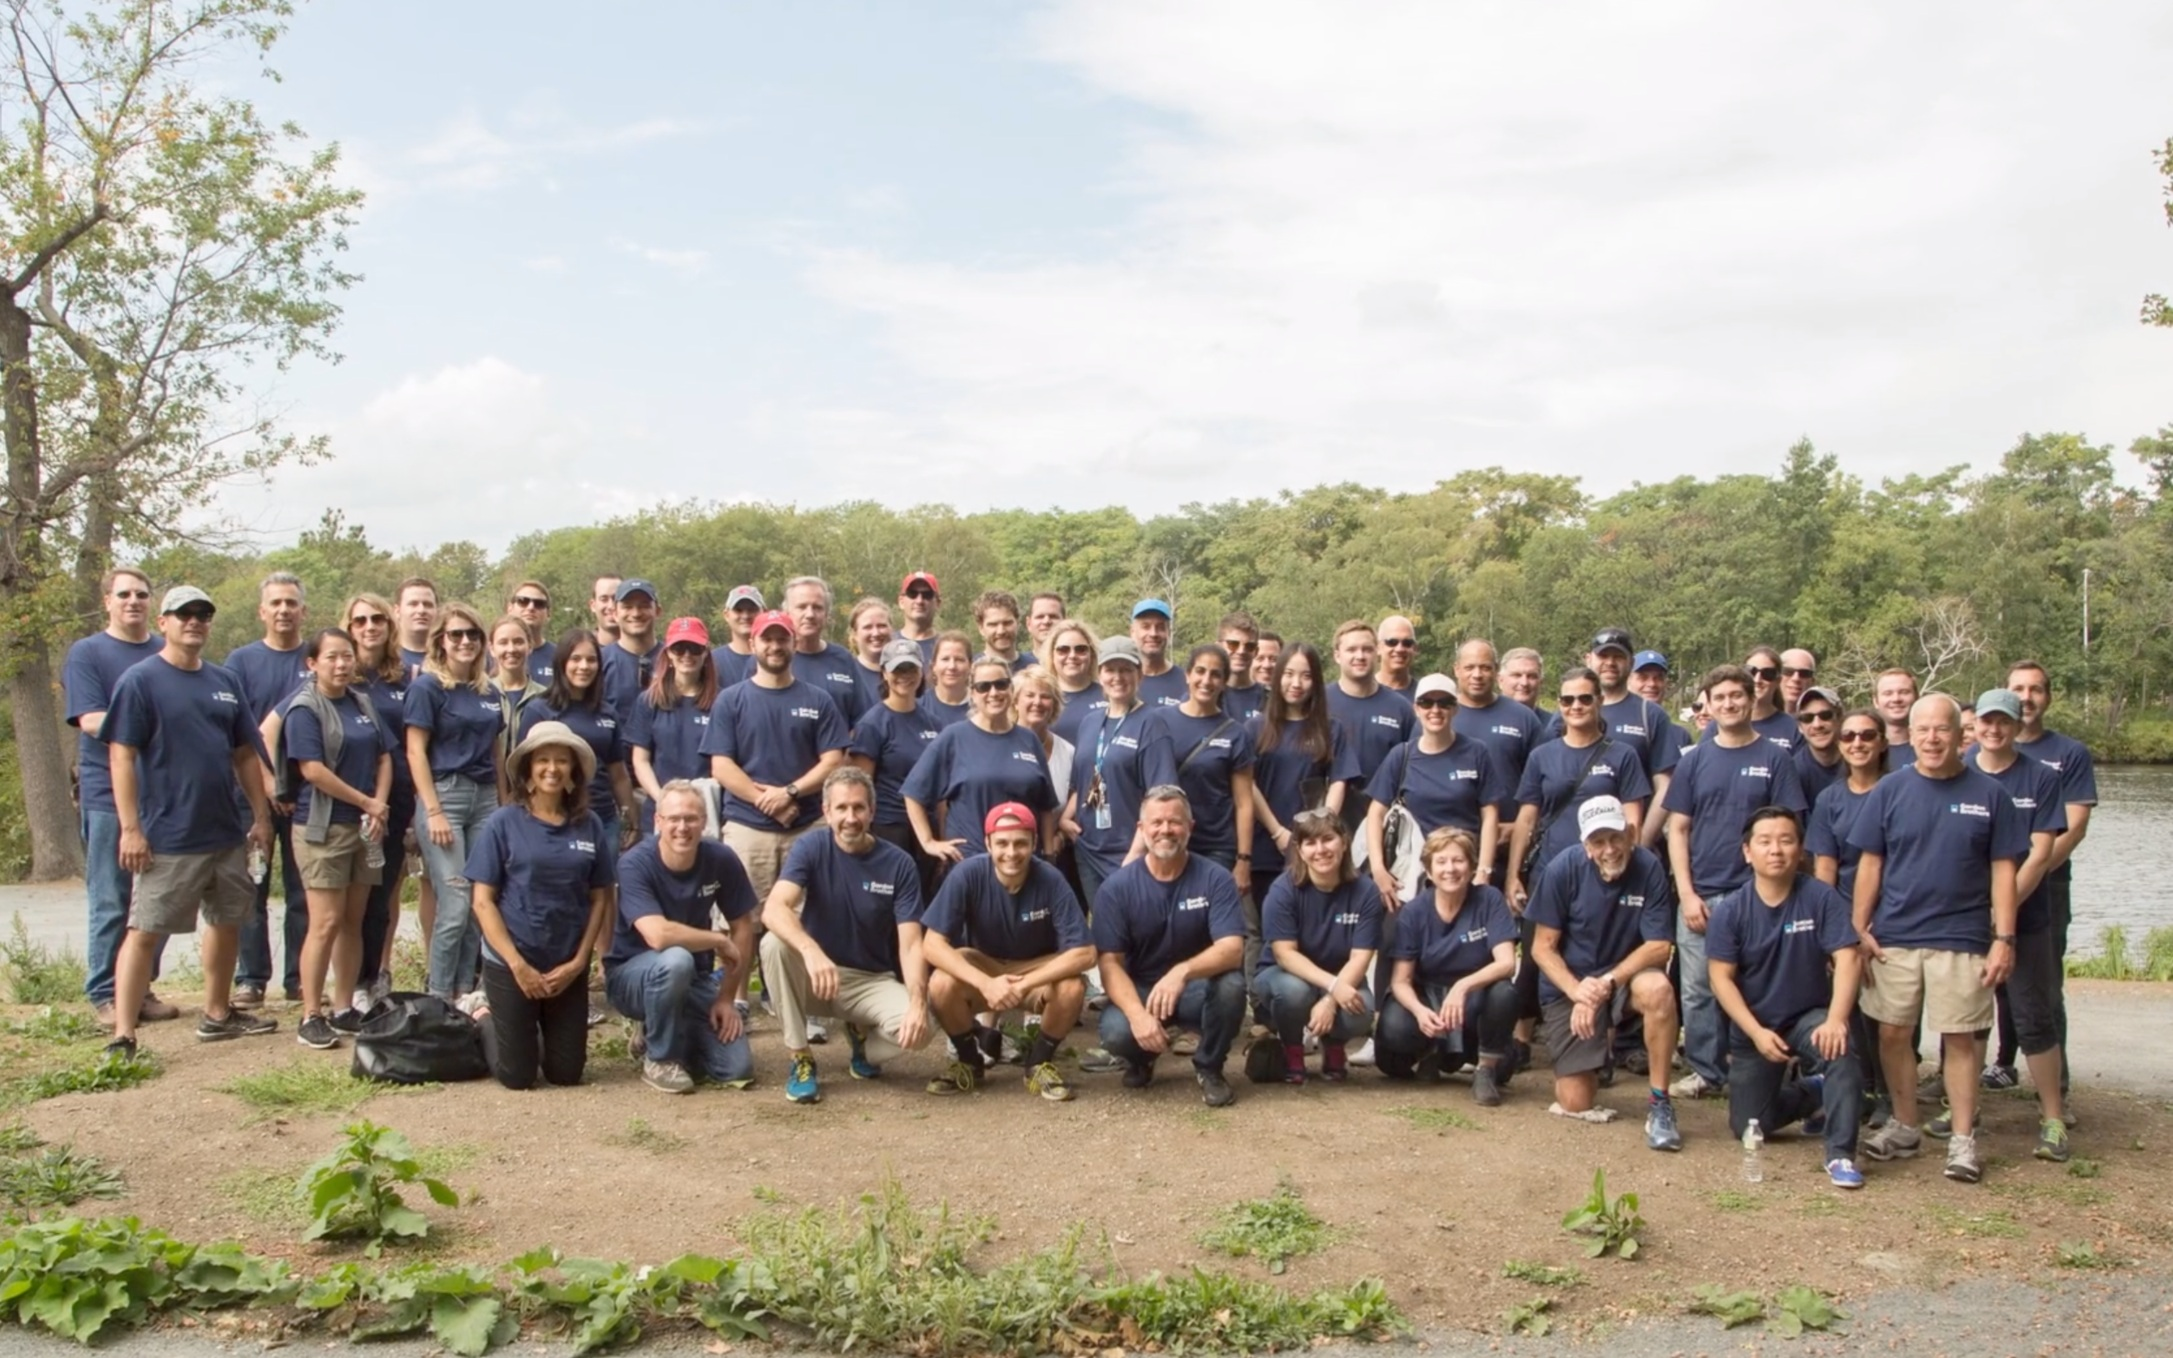 The Charles River Conservancy